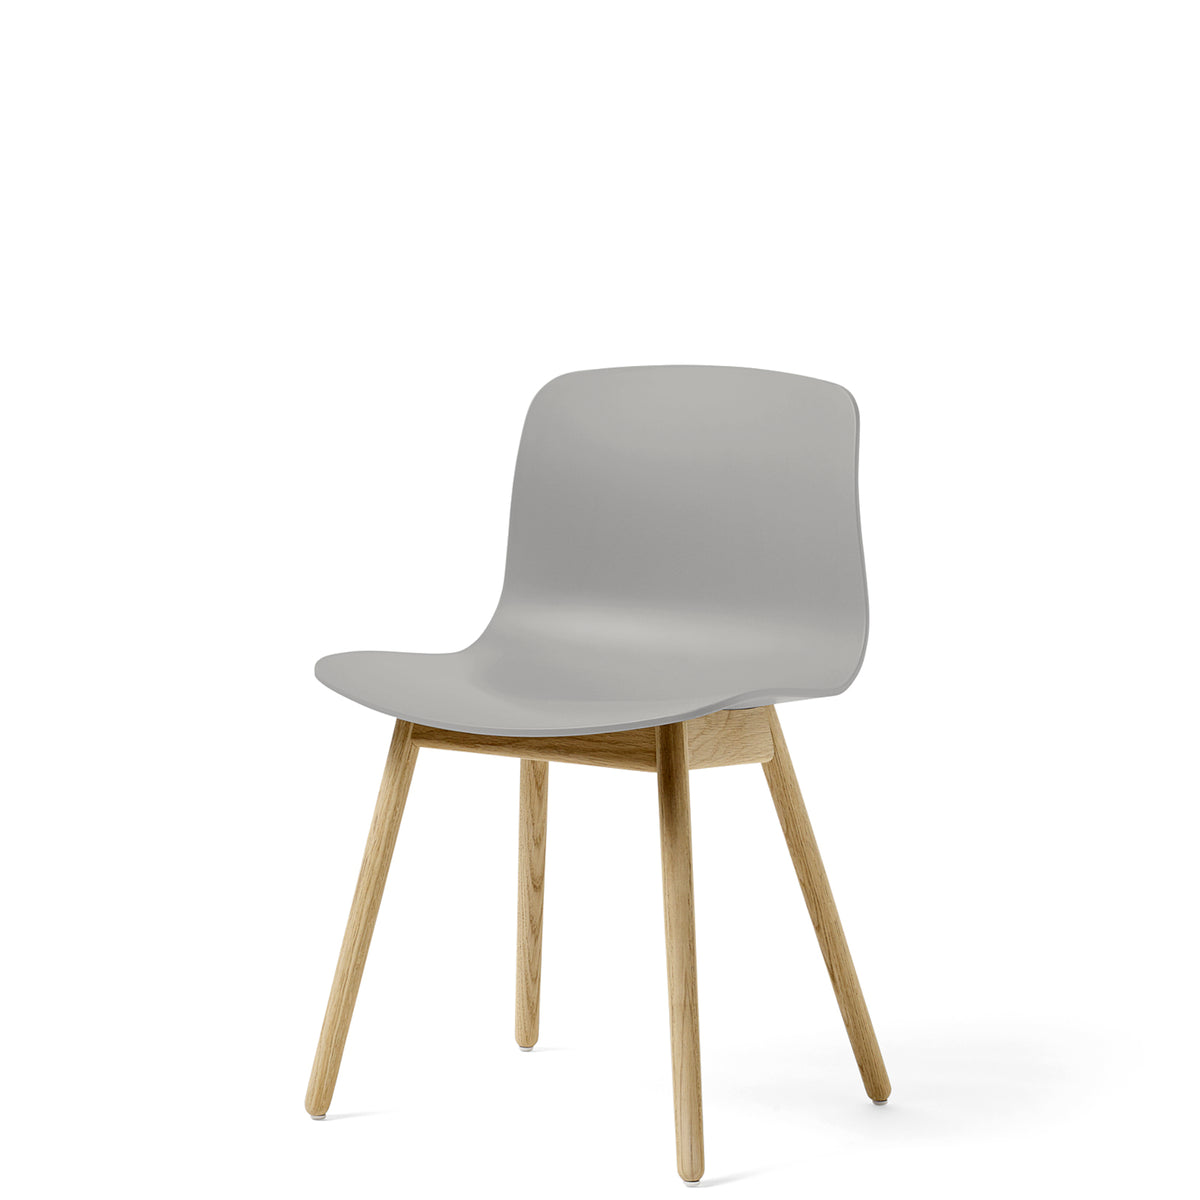 HAY About A Chair AAC12 Concrete Grey Chair with Matt Lacquered Solid Oak Frame